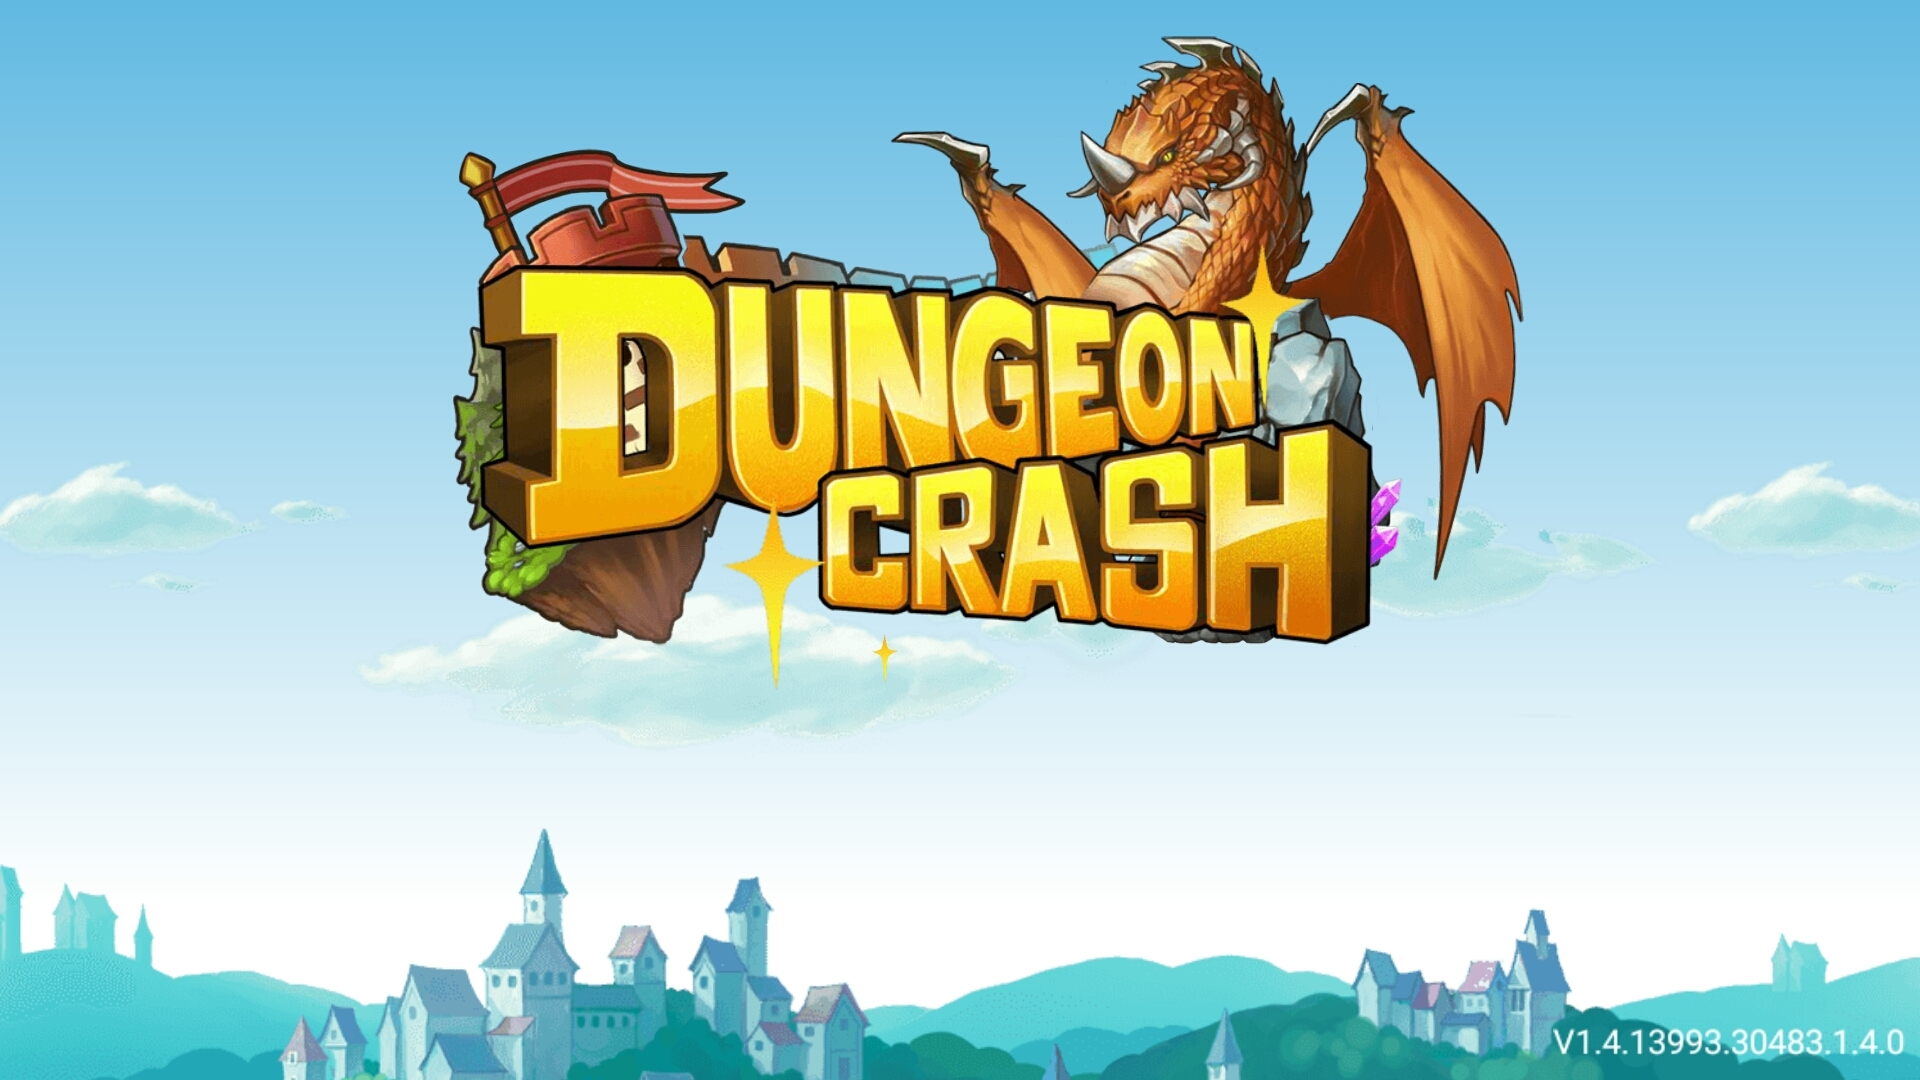 Dungeon Crash Review